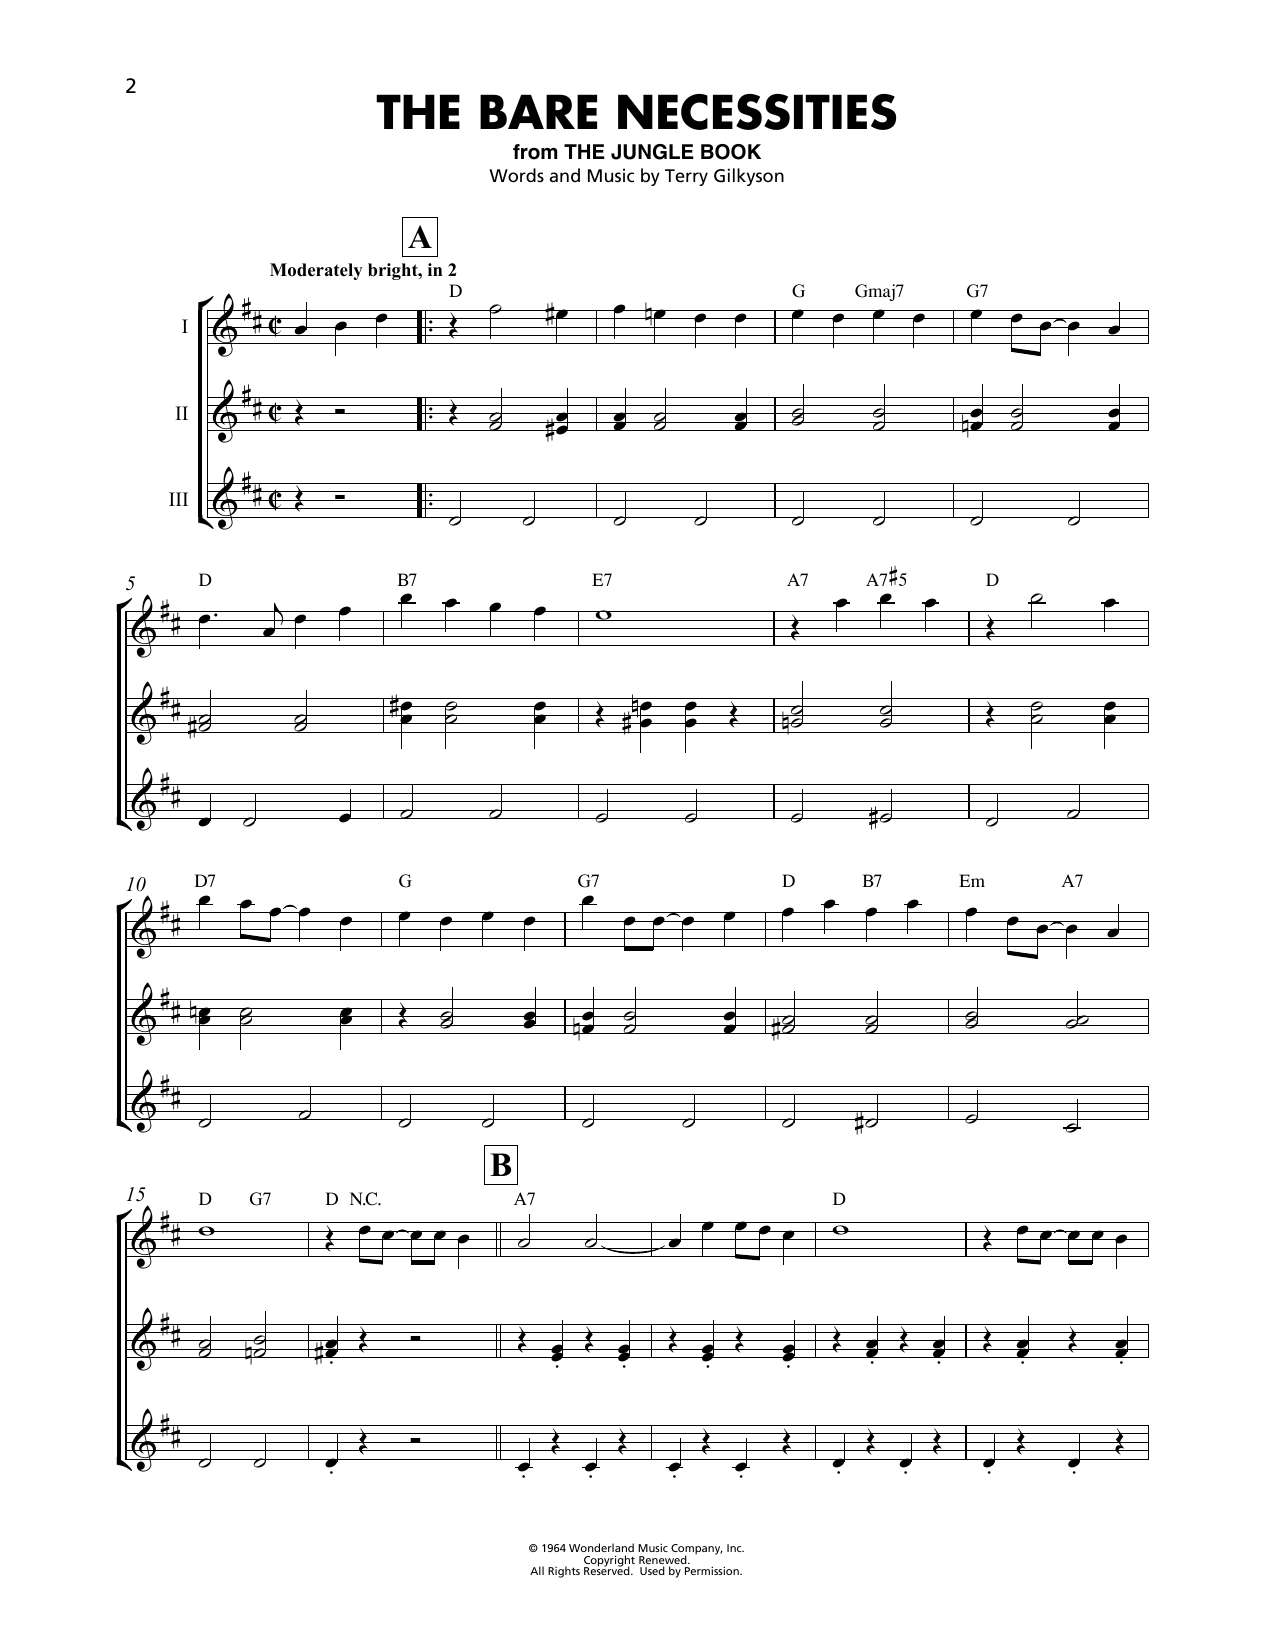 Terry Gilkyson The Bare Necessities From The Jungle Book Sheet Music Pdf Notes Chords Children Score Piano Solo Download Printable Sku 417857